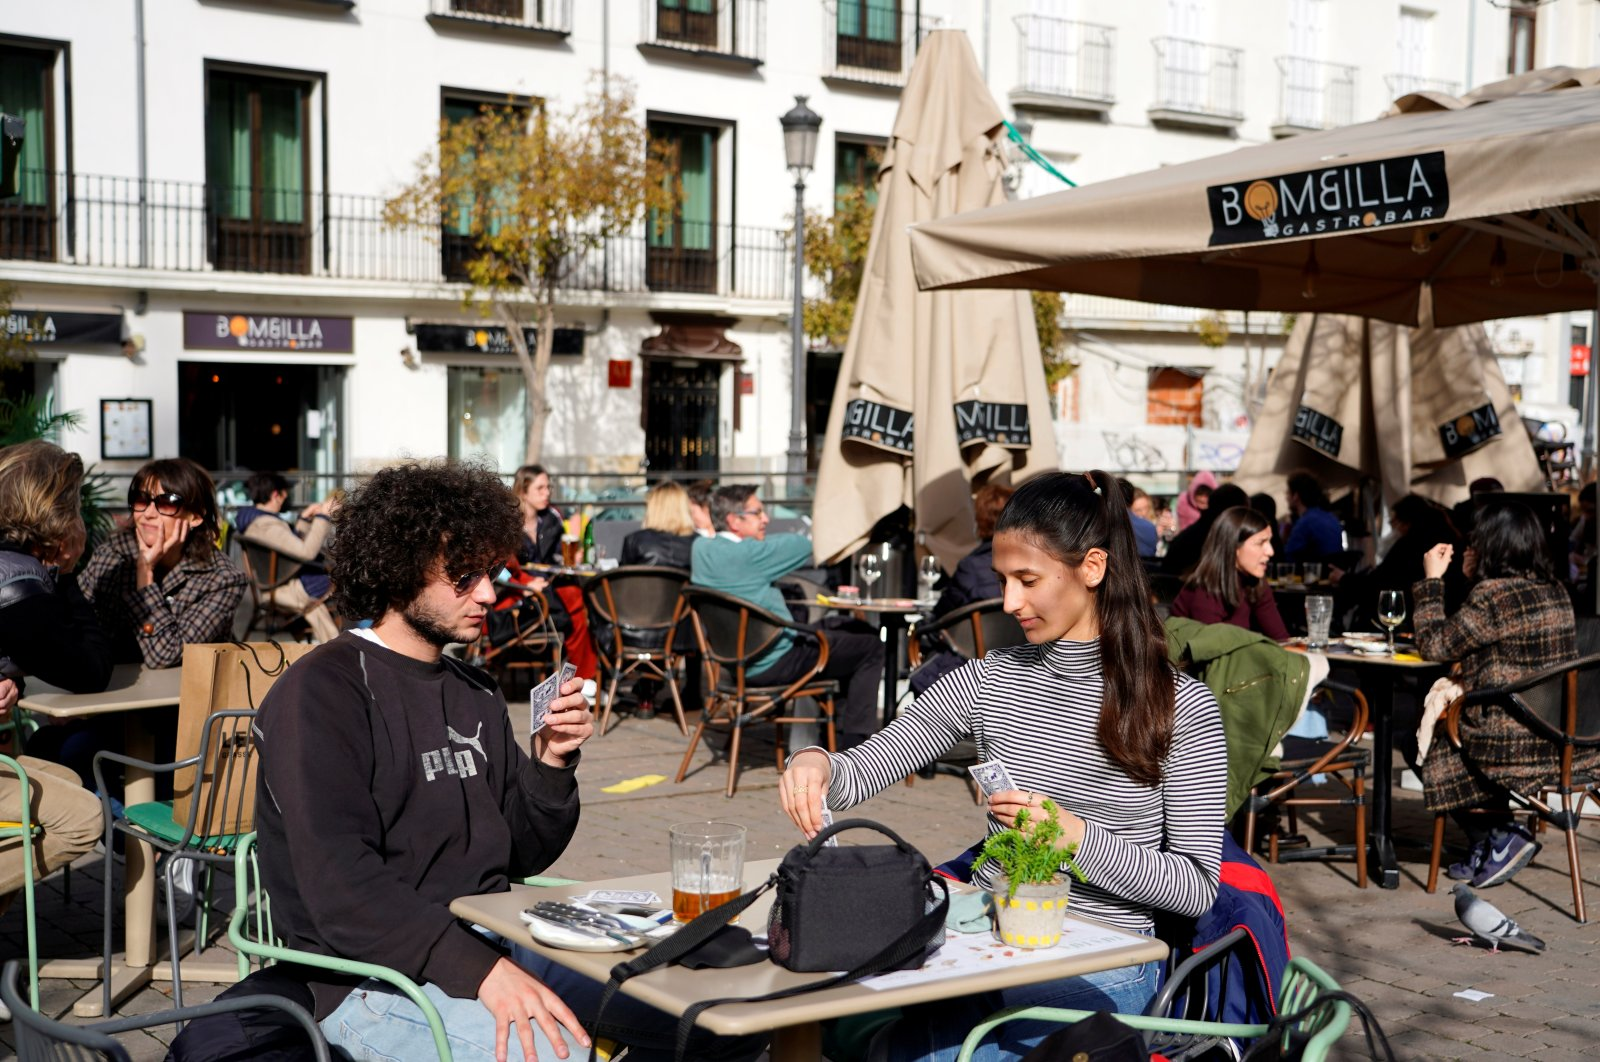 French visitors Theo Perucci and his sister Luna play cards while enjoying a meal on a terrace during their week on holiday as the coronavirus pandemic continues in Madrid, Spain, Feb. 5, 2021. (Reuters Photo)